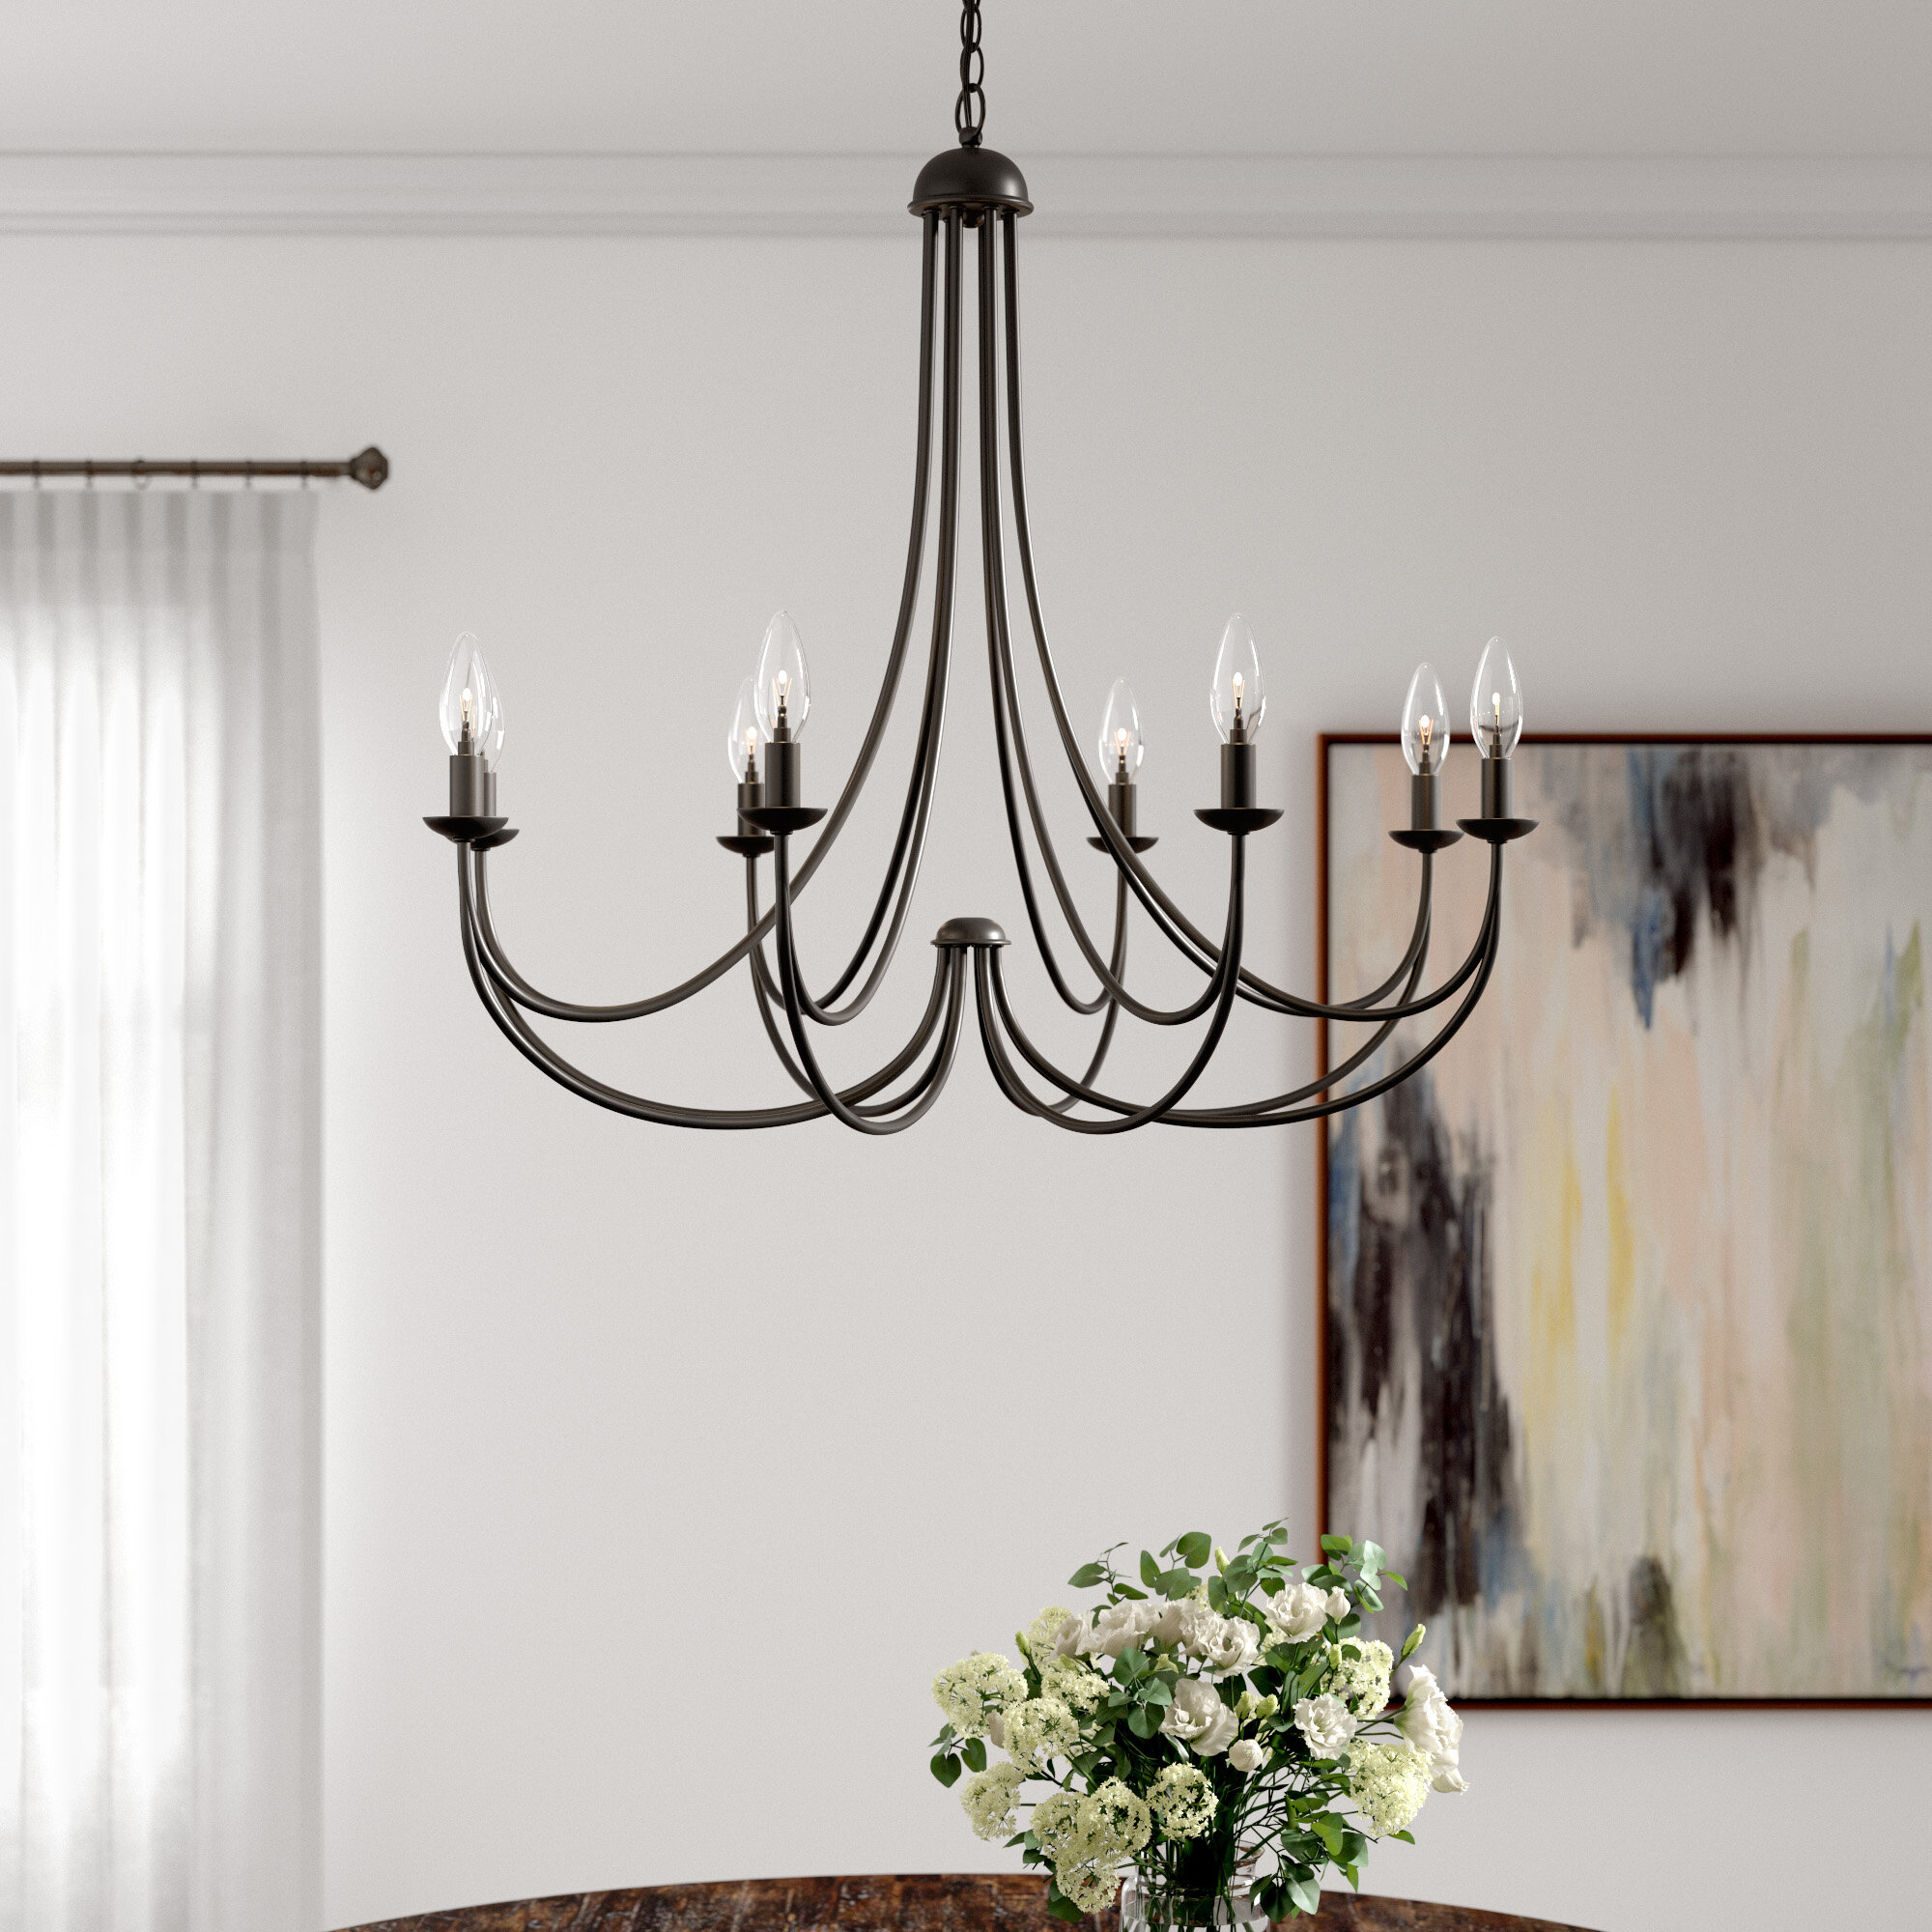 Emilia 8 Light Candle Style Chandelier With Regard To Watford 9 Light Candle Style Chandeliers (Gallery 19 of 30)